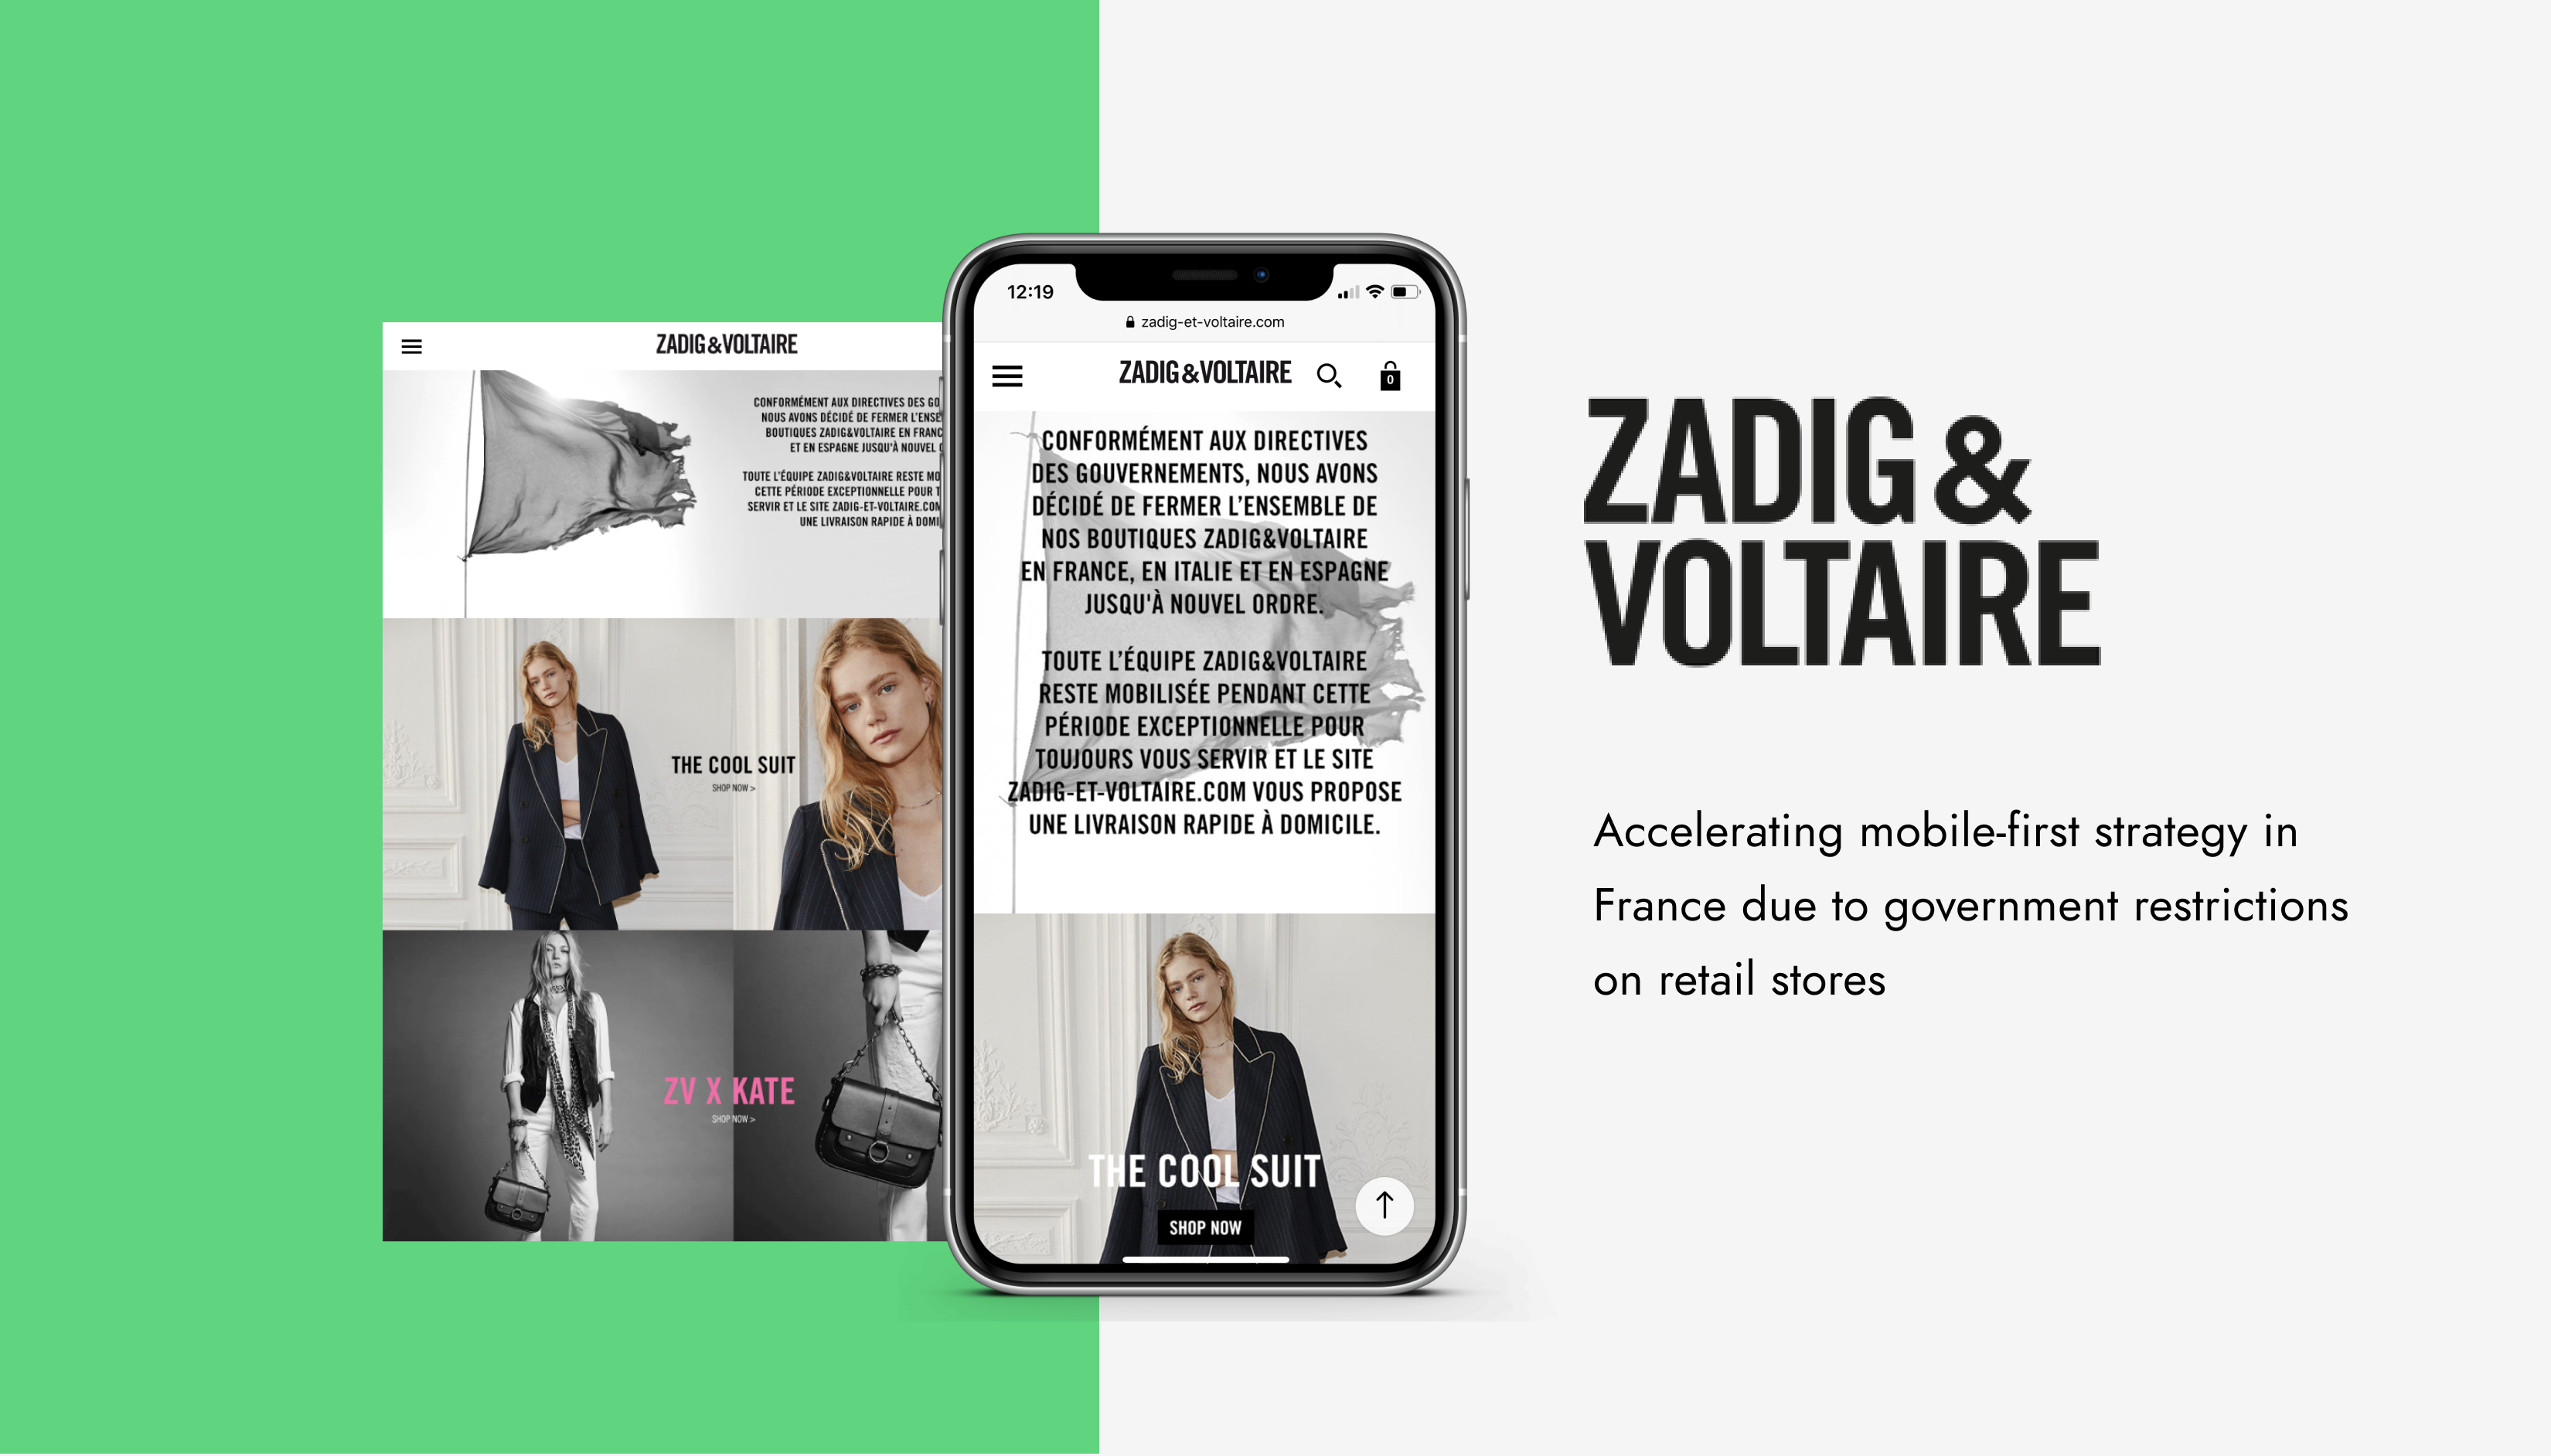 zadig&voltaire france store